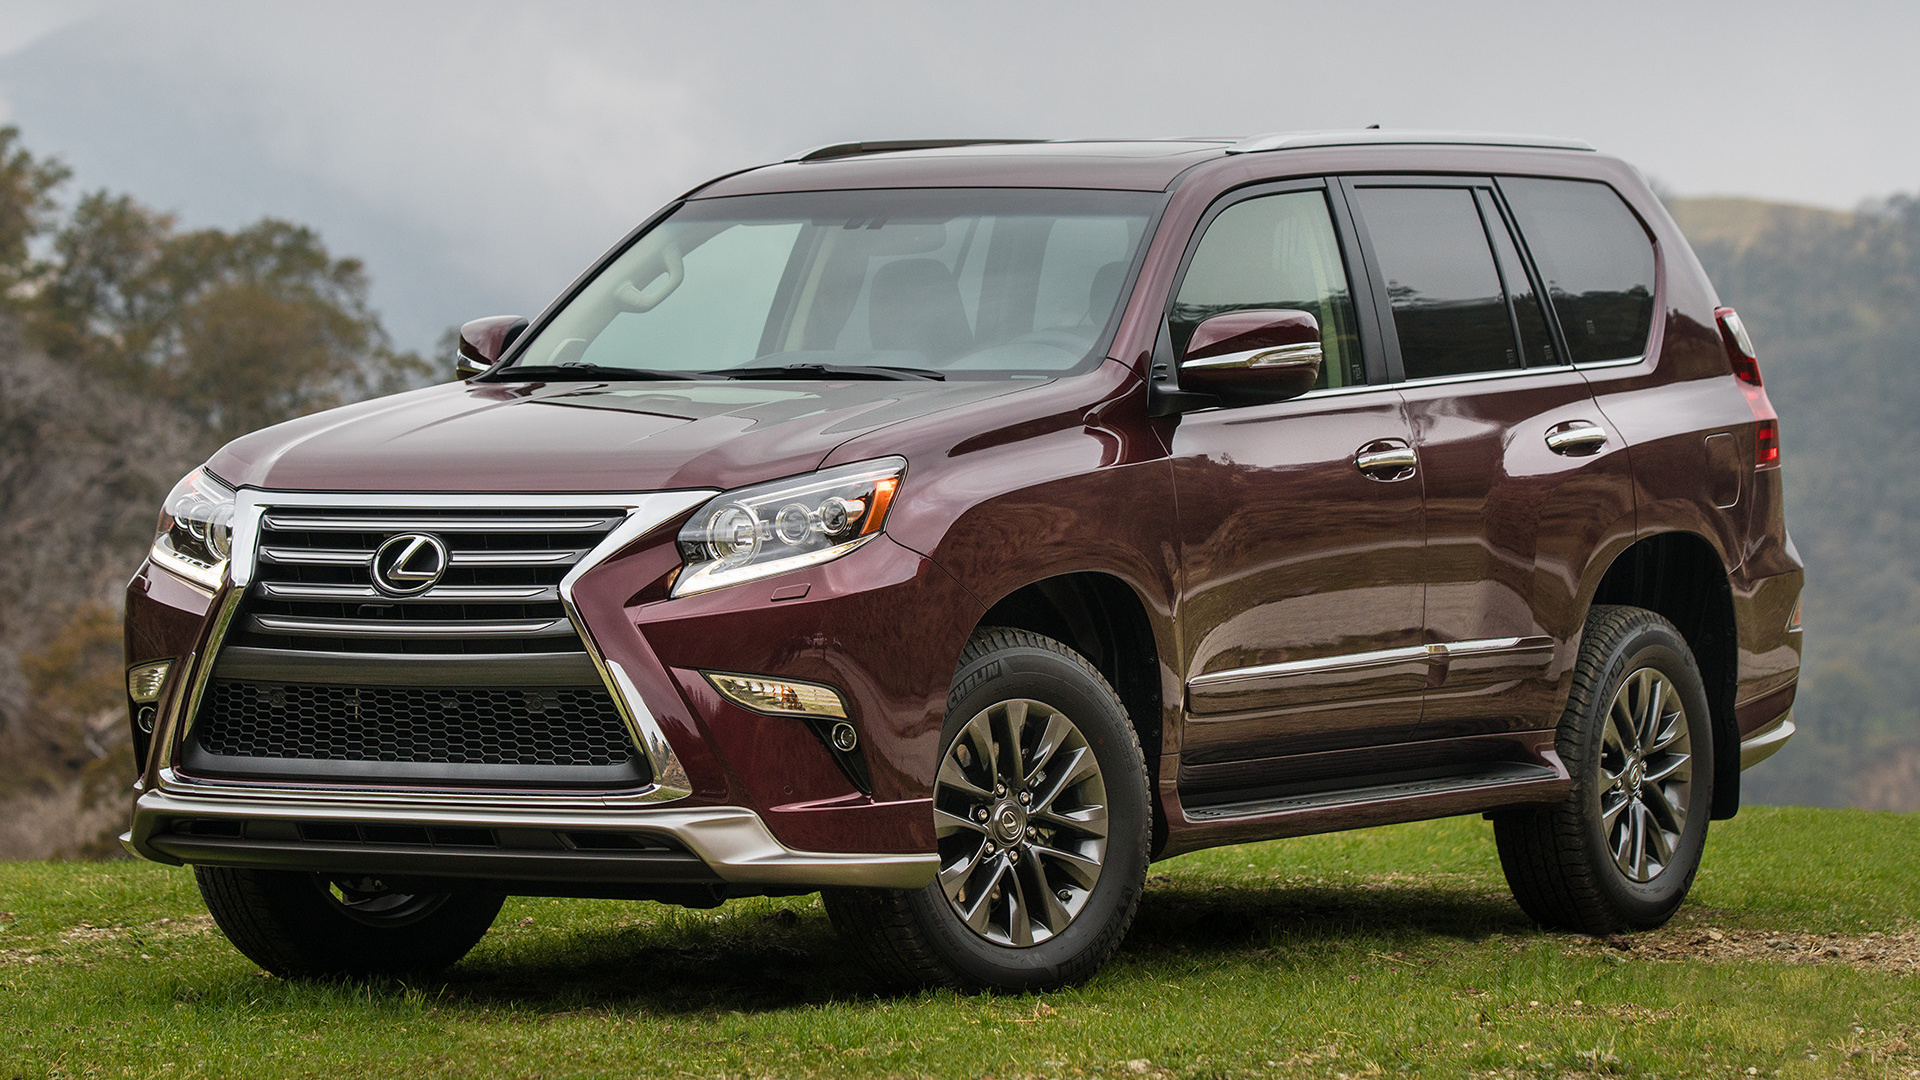 Lexus GX Sport Design Package (2017) Wallpapers and HD Images - Car Pixel